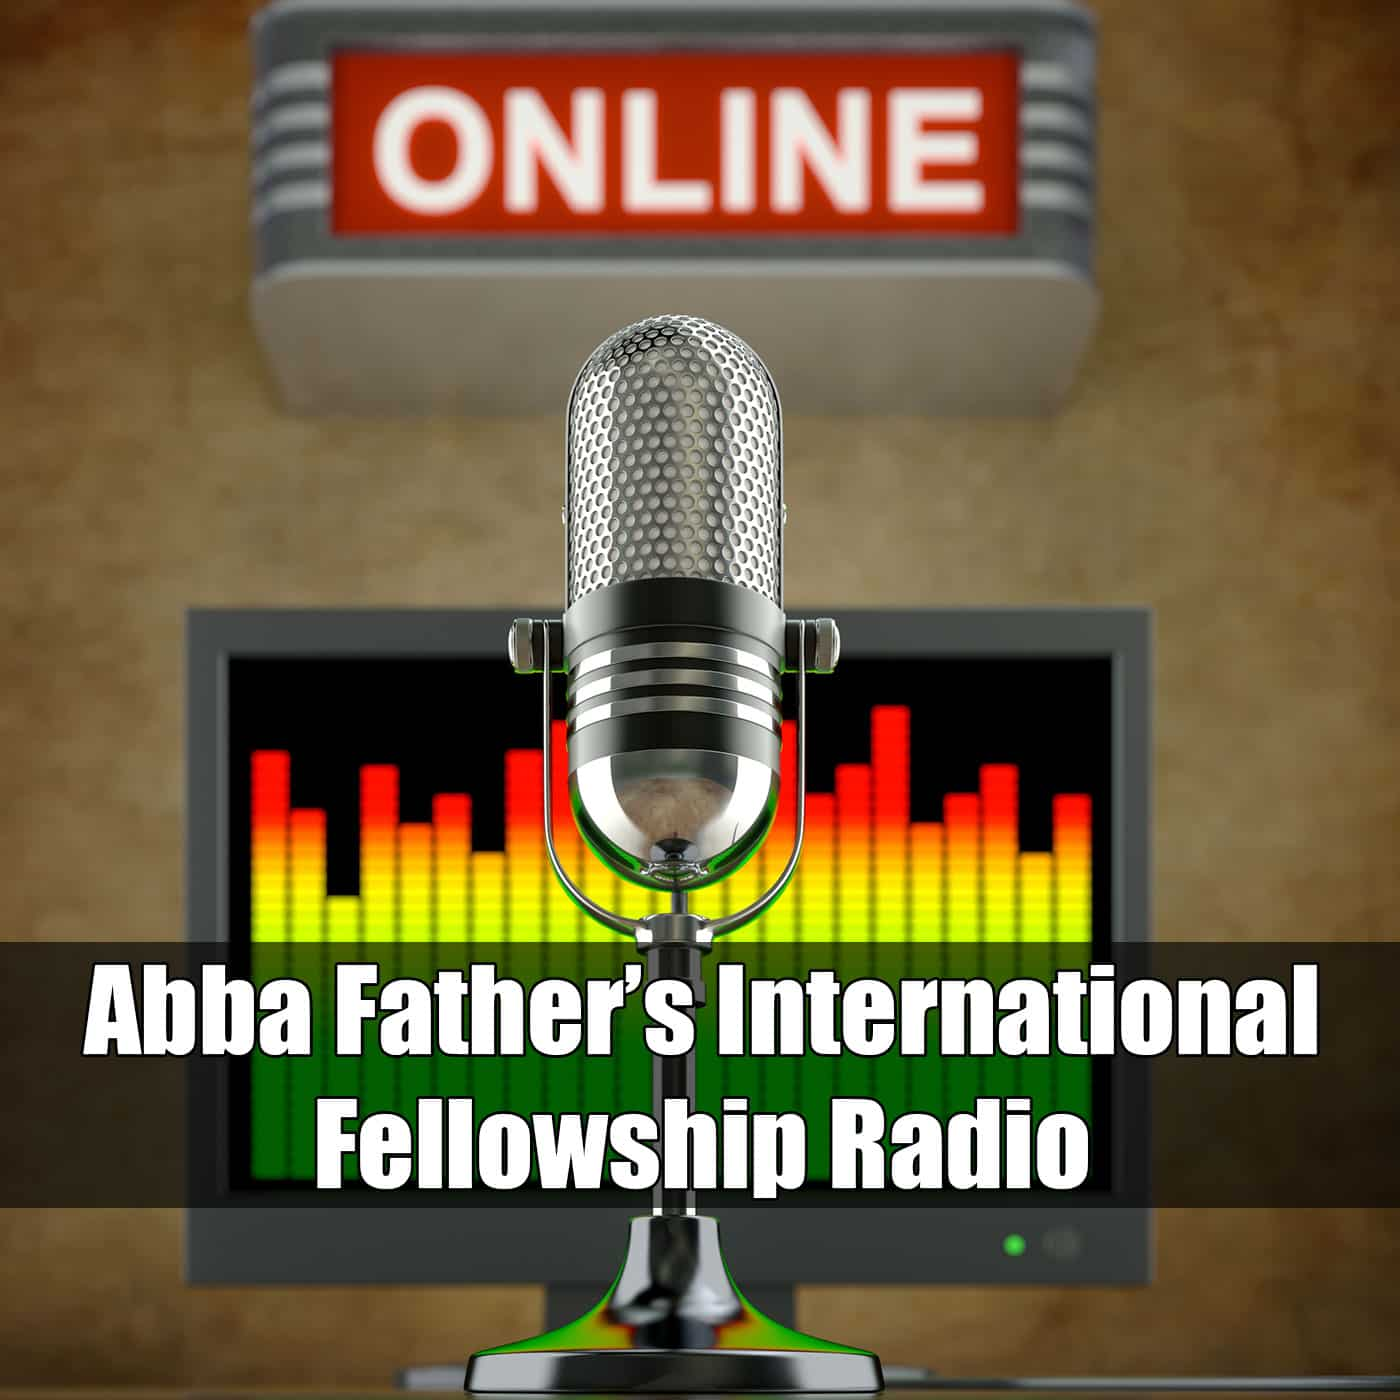 Abba Father's International Fellowship Radio with John McTernan